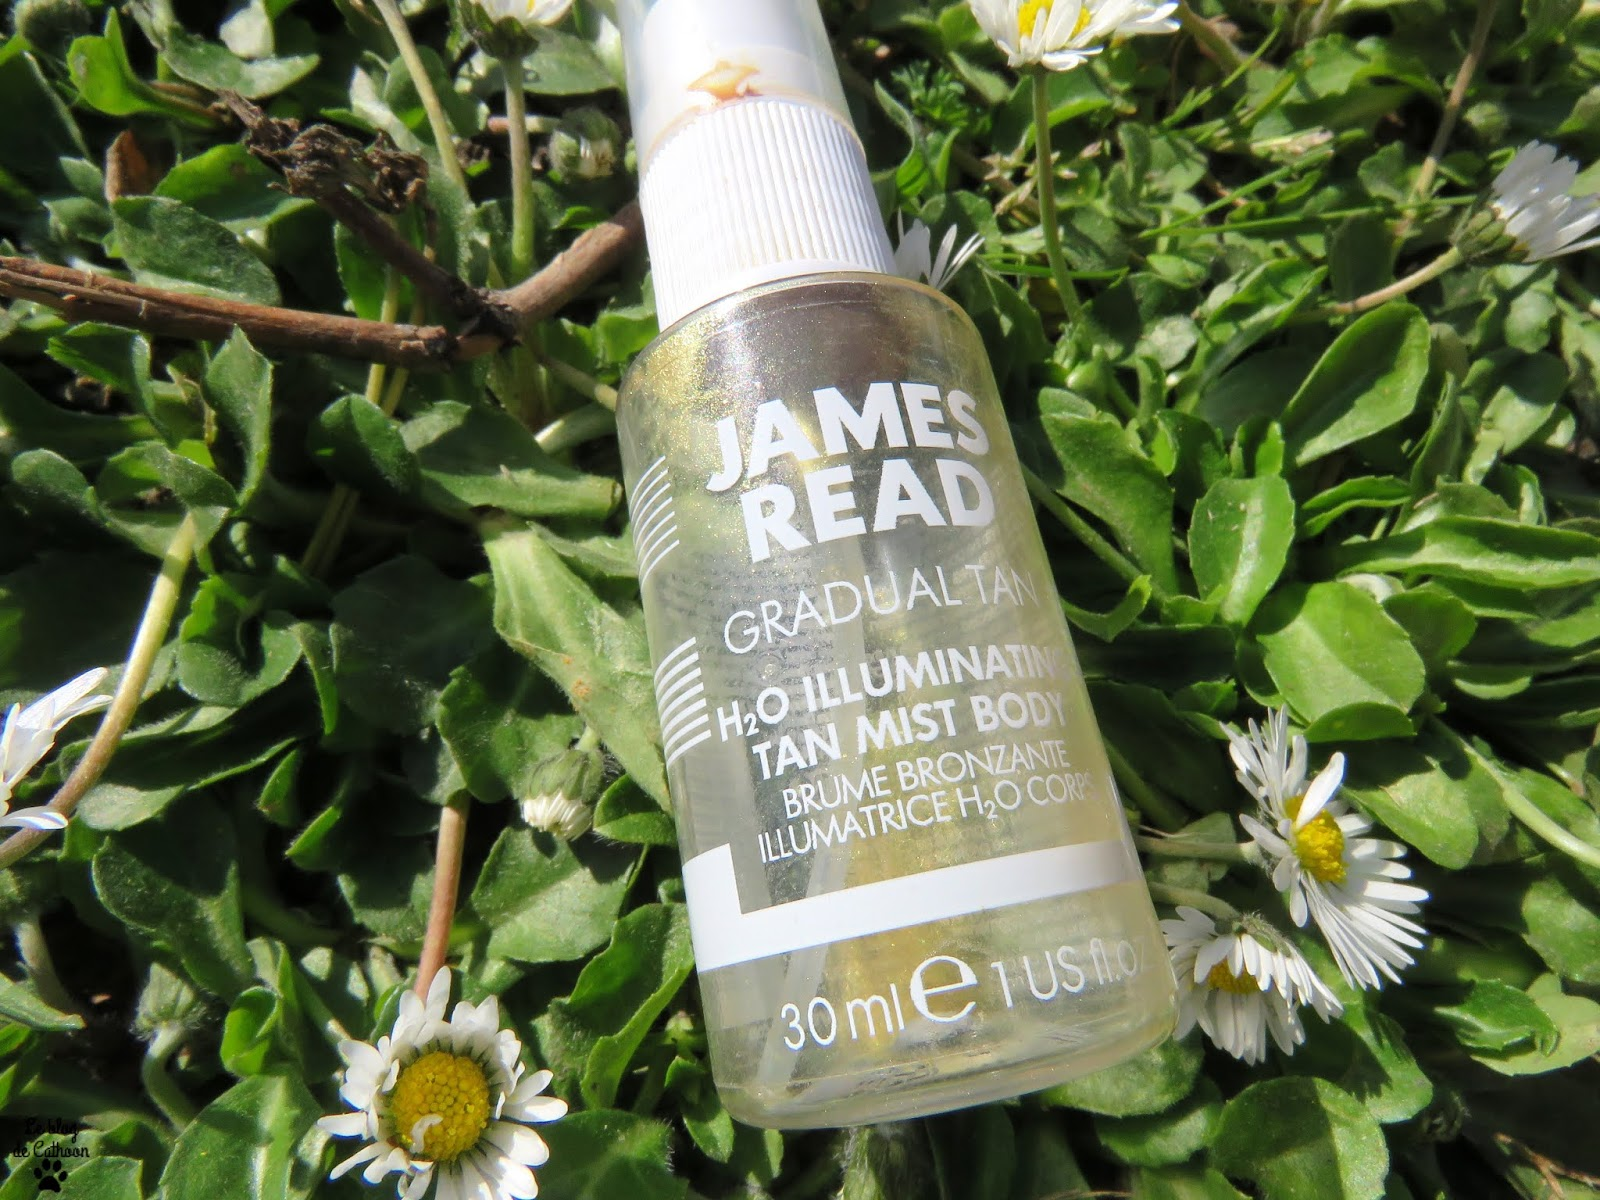 H2O Illuminating Tan Mist Body - Brume Bronzante Illuminatrice H20 Corps - James Read